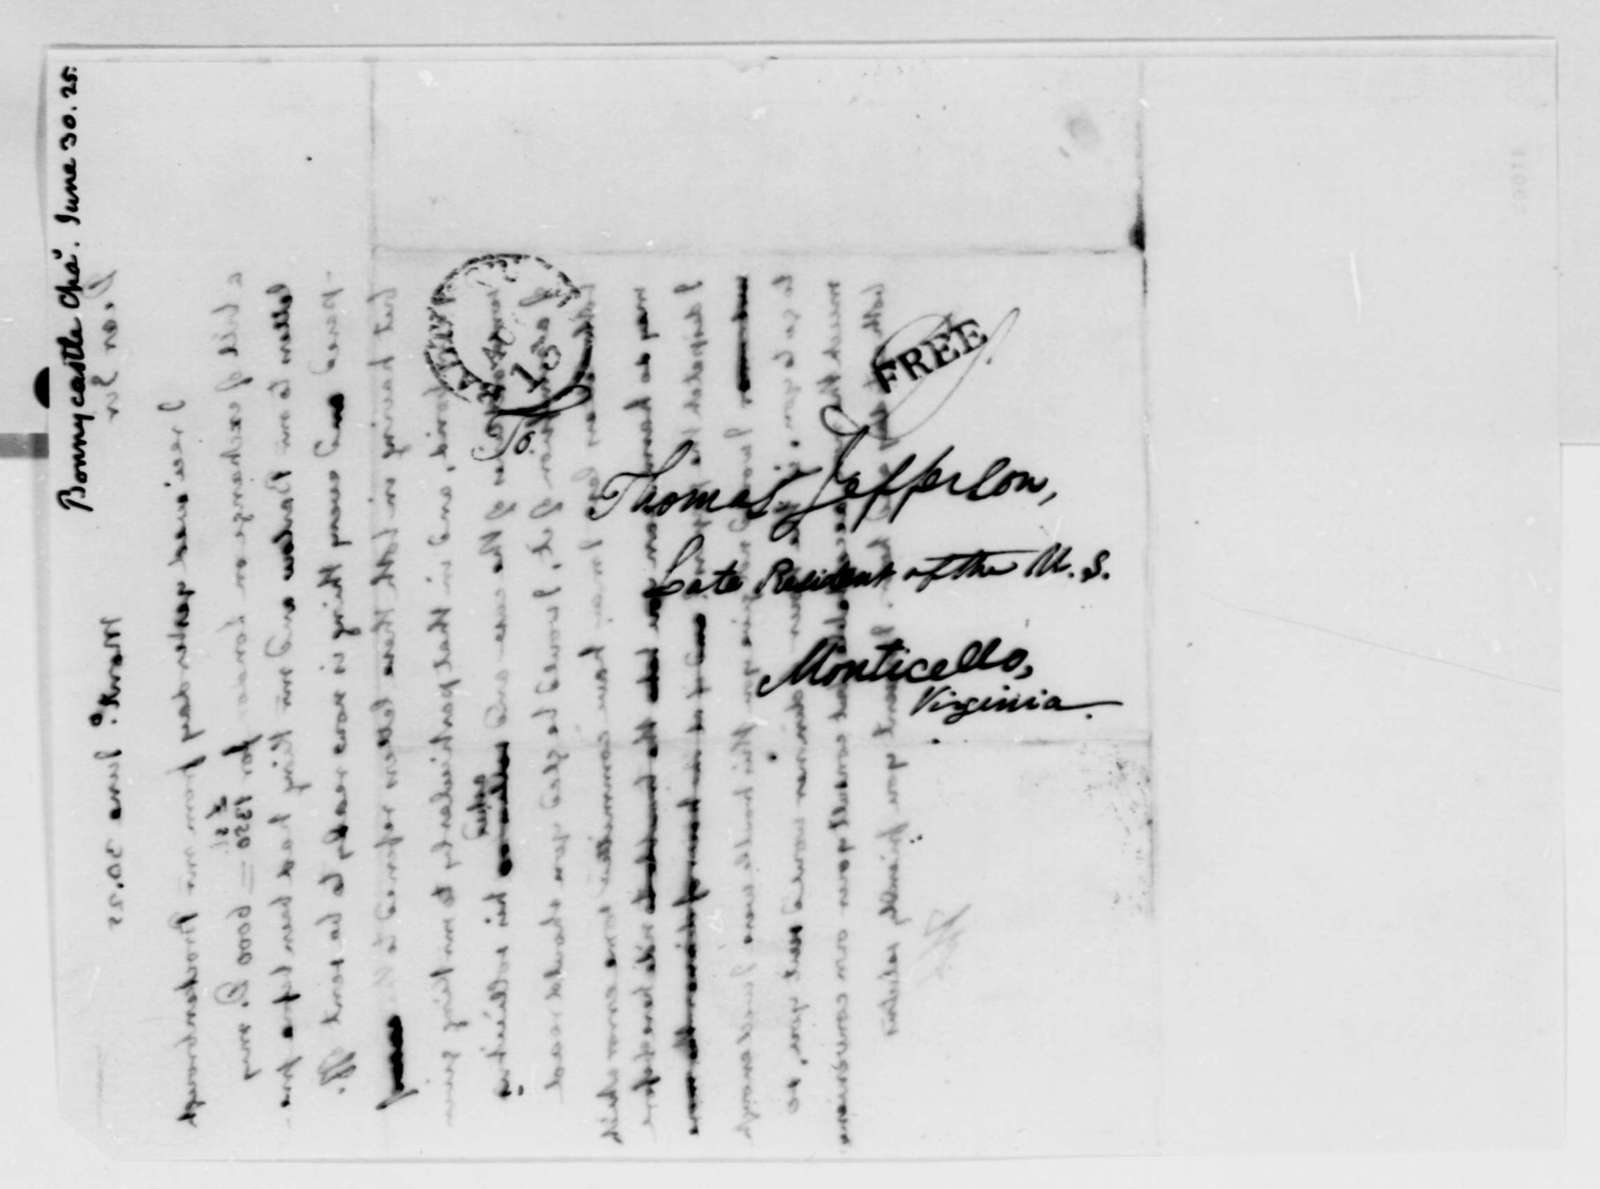 Thomas Jefferson to Charles Bonnycastle, June 30, 1825